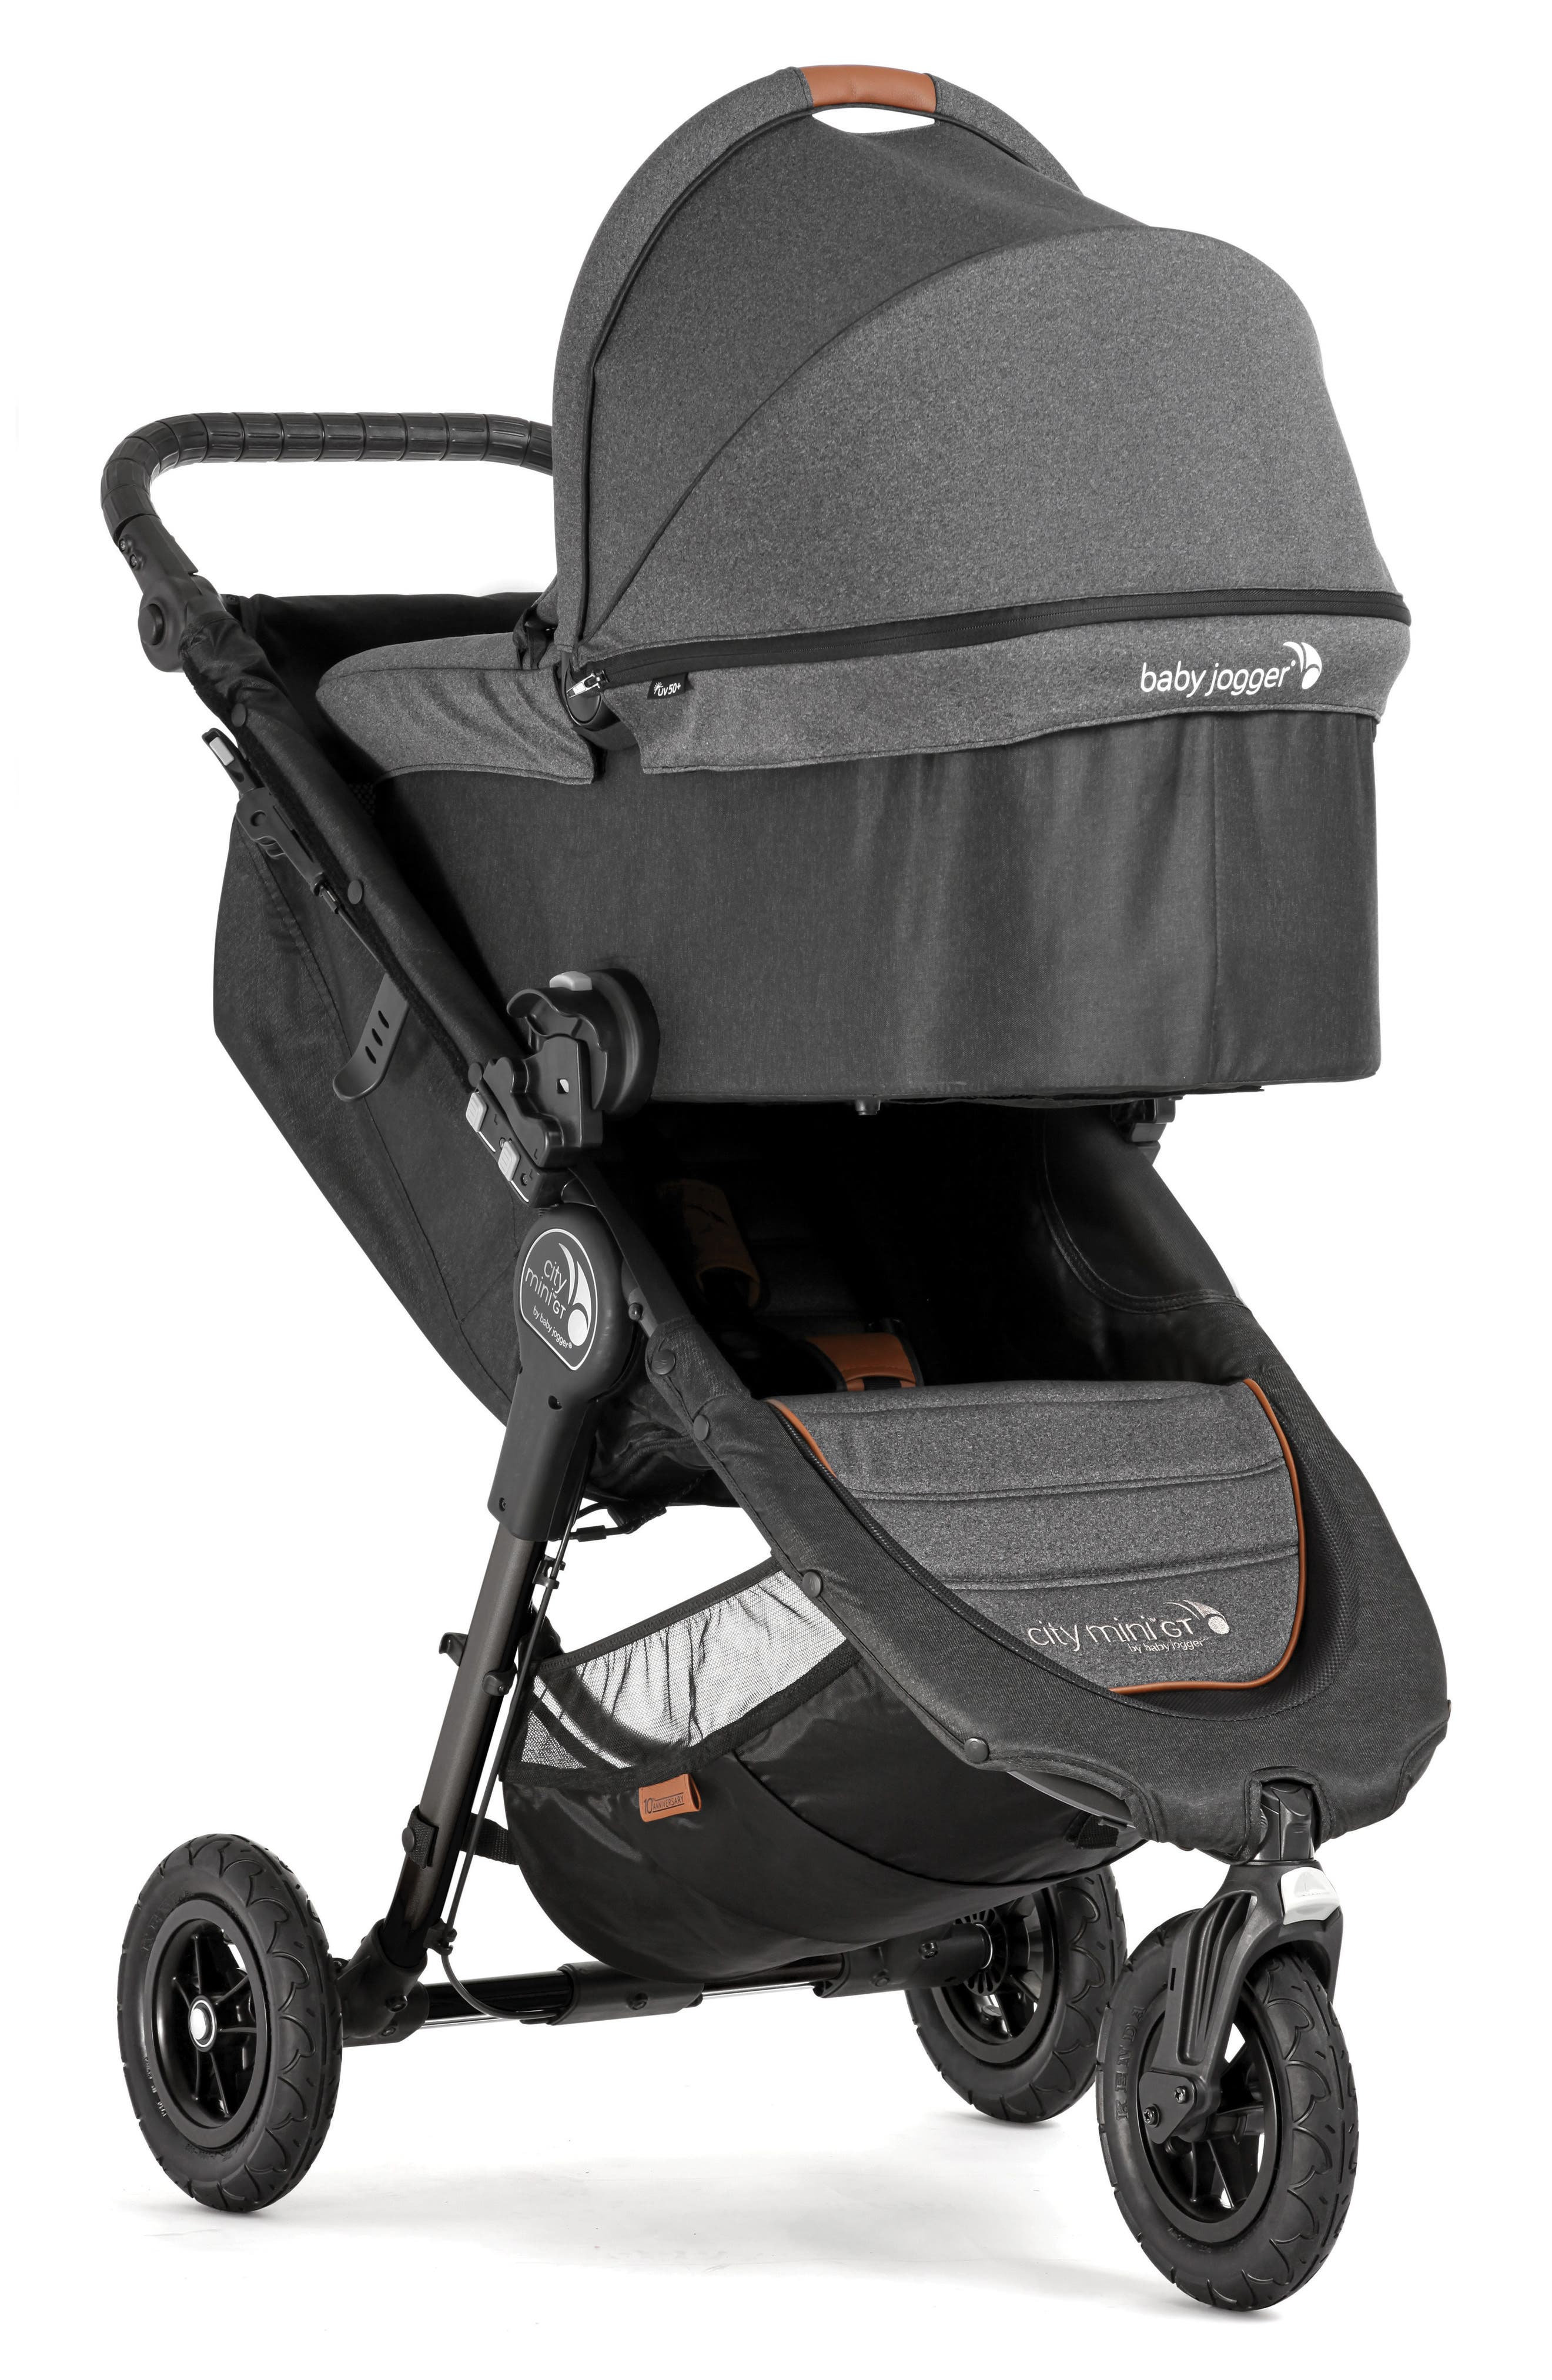 Deluxe Pram Converter Kit for City Mini<sup>®</sup> 2018 Special Edition 10-Year Anniversary All-Terrain Stroller,                             Alternate thumbnail 8, color,                             Grey